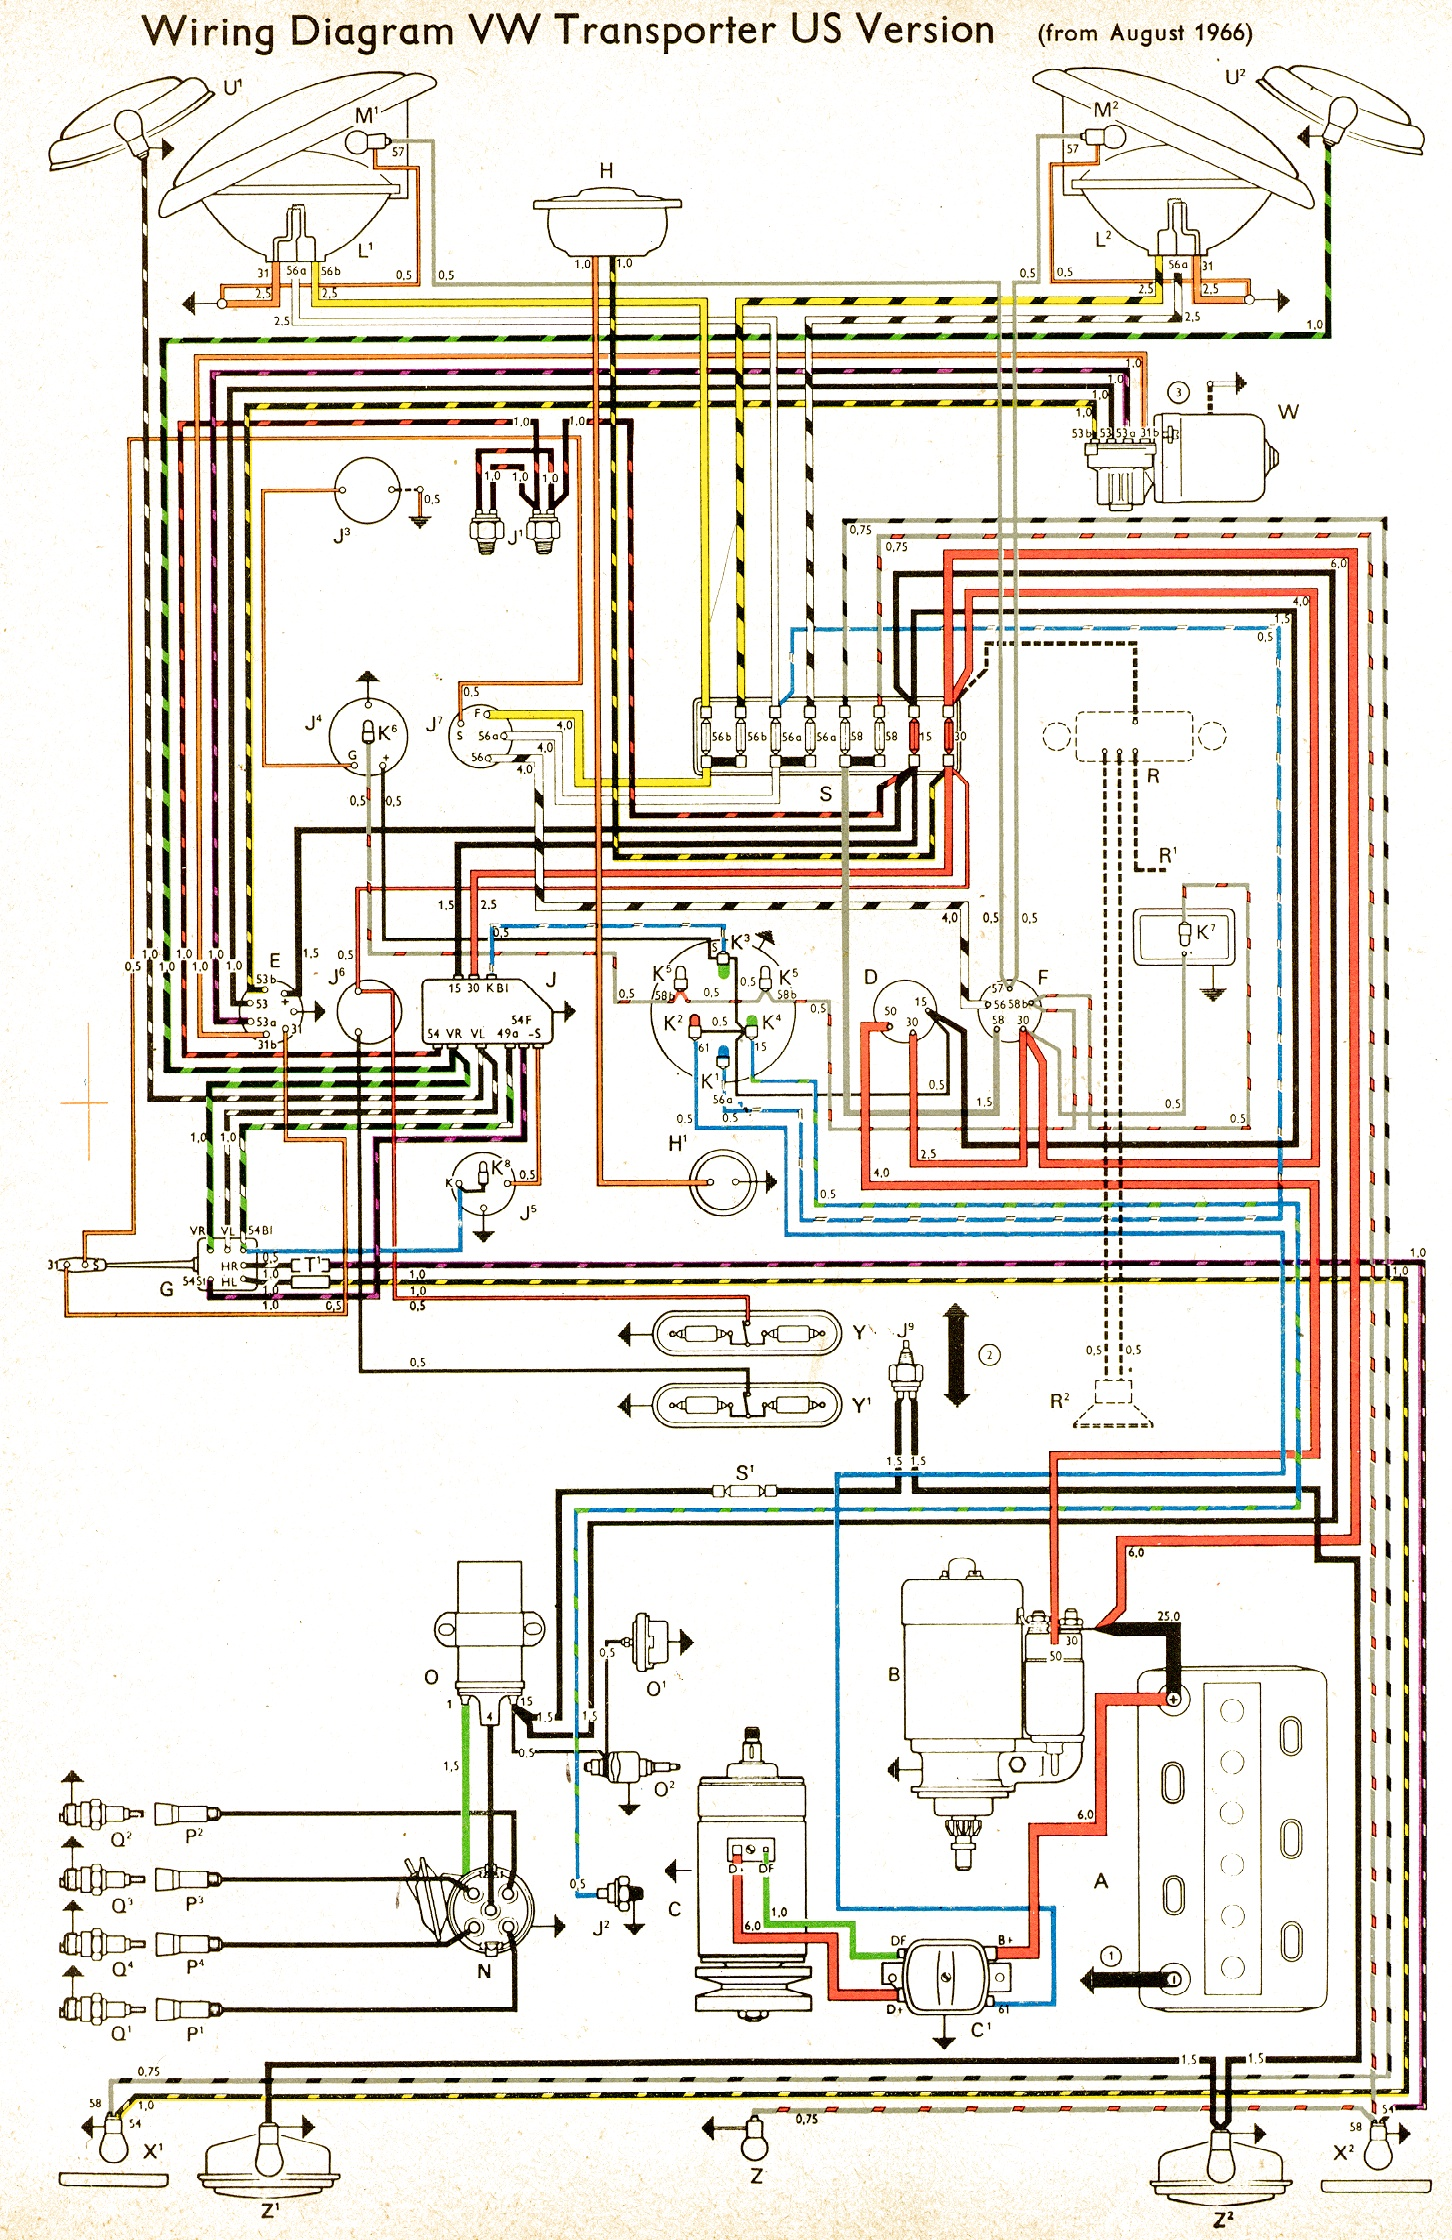 76 vw bus wiring diagram vw bus wiring diagrams vintagebus.com - vw bus (and other) wiring diagrams #11